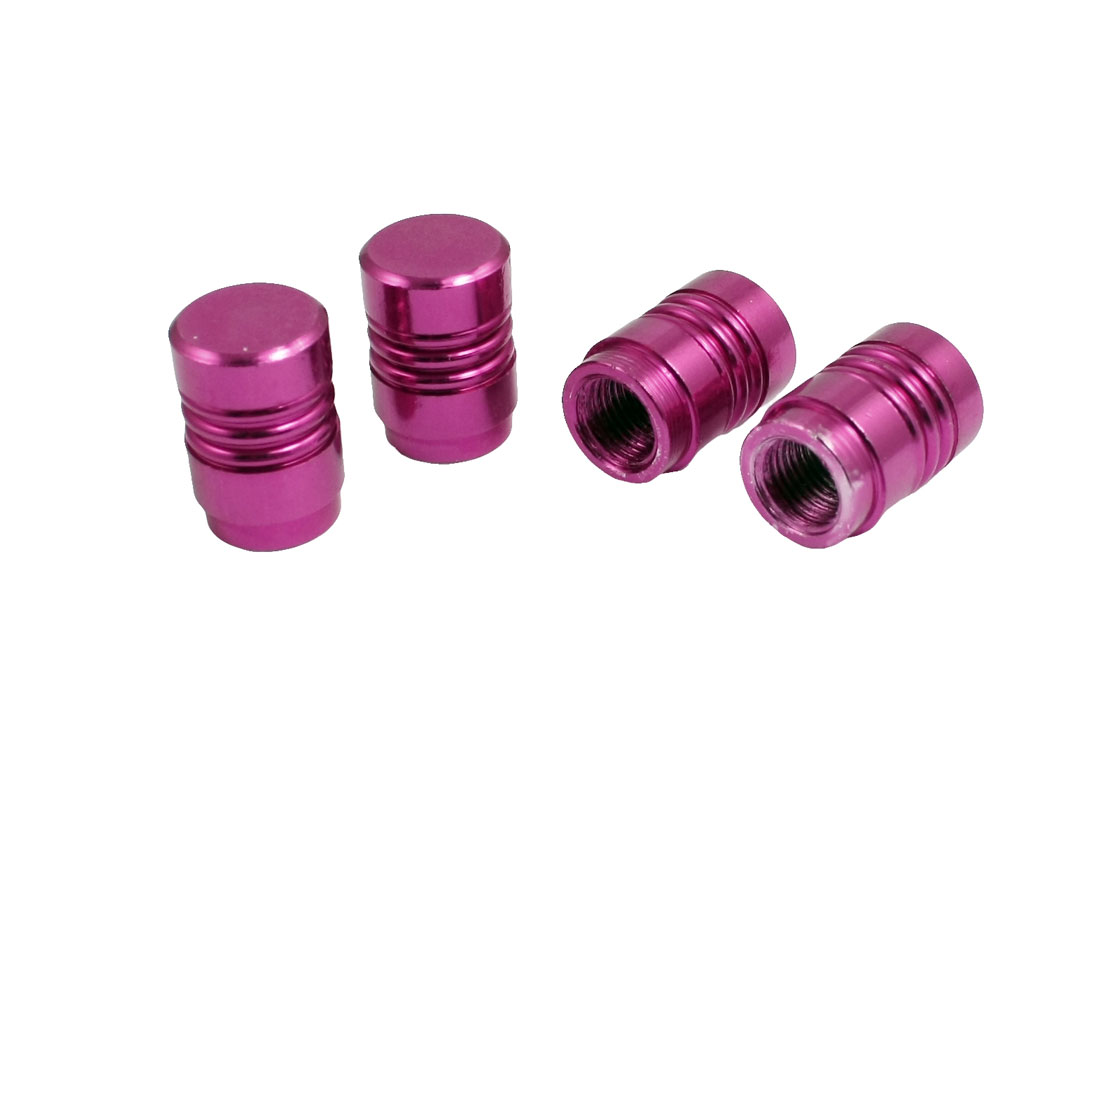 4-Pcs-Fuchsia-Auto-Car-Tyre-Tire-Valve-Caps-Stem-Covers-New